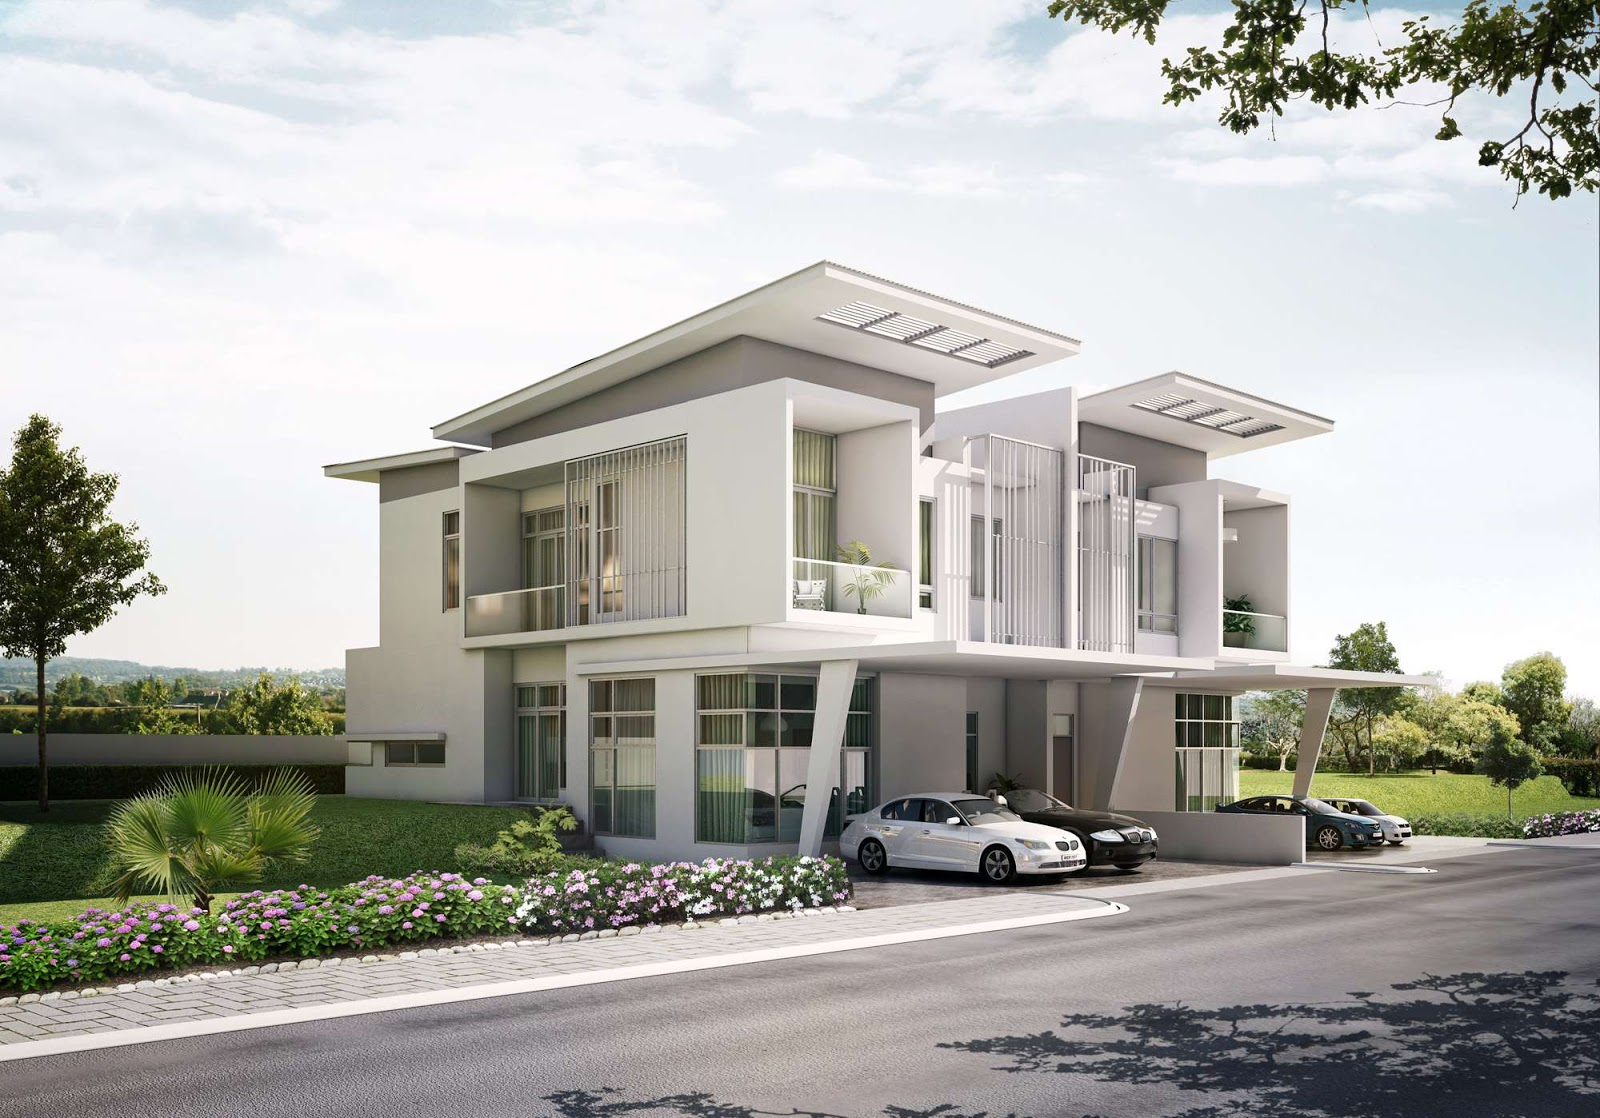 New home designs latest singapore modern homes exterior for Modern home designs exterior